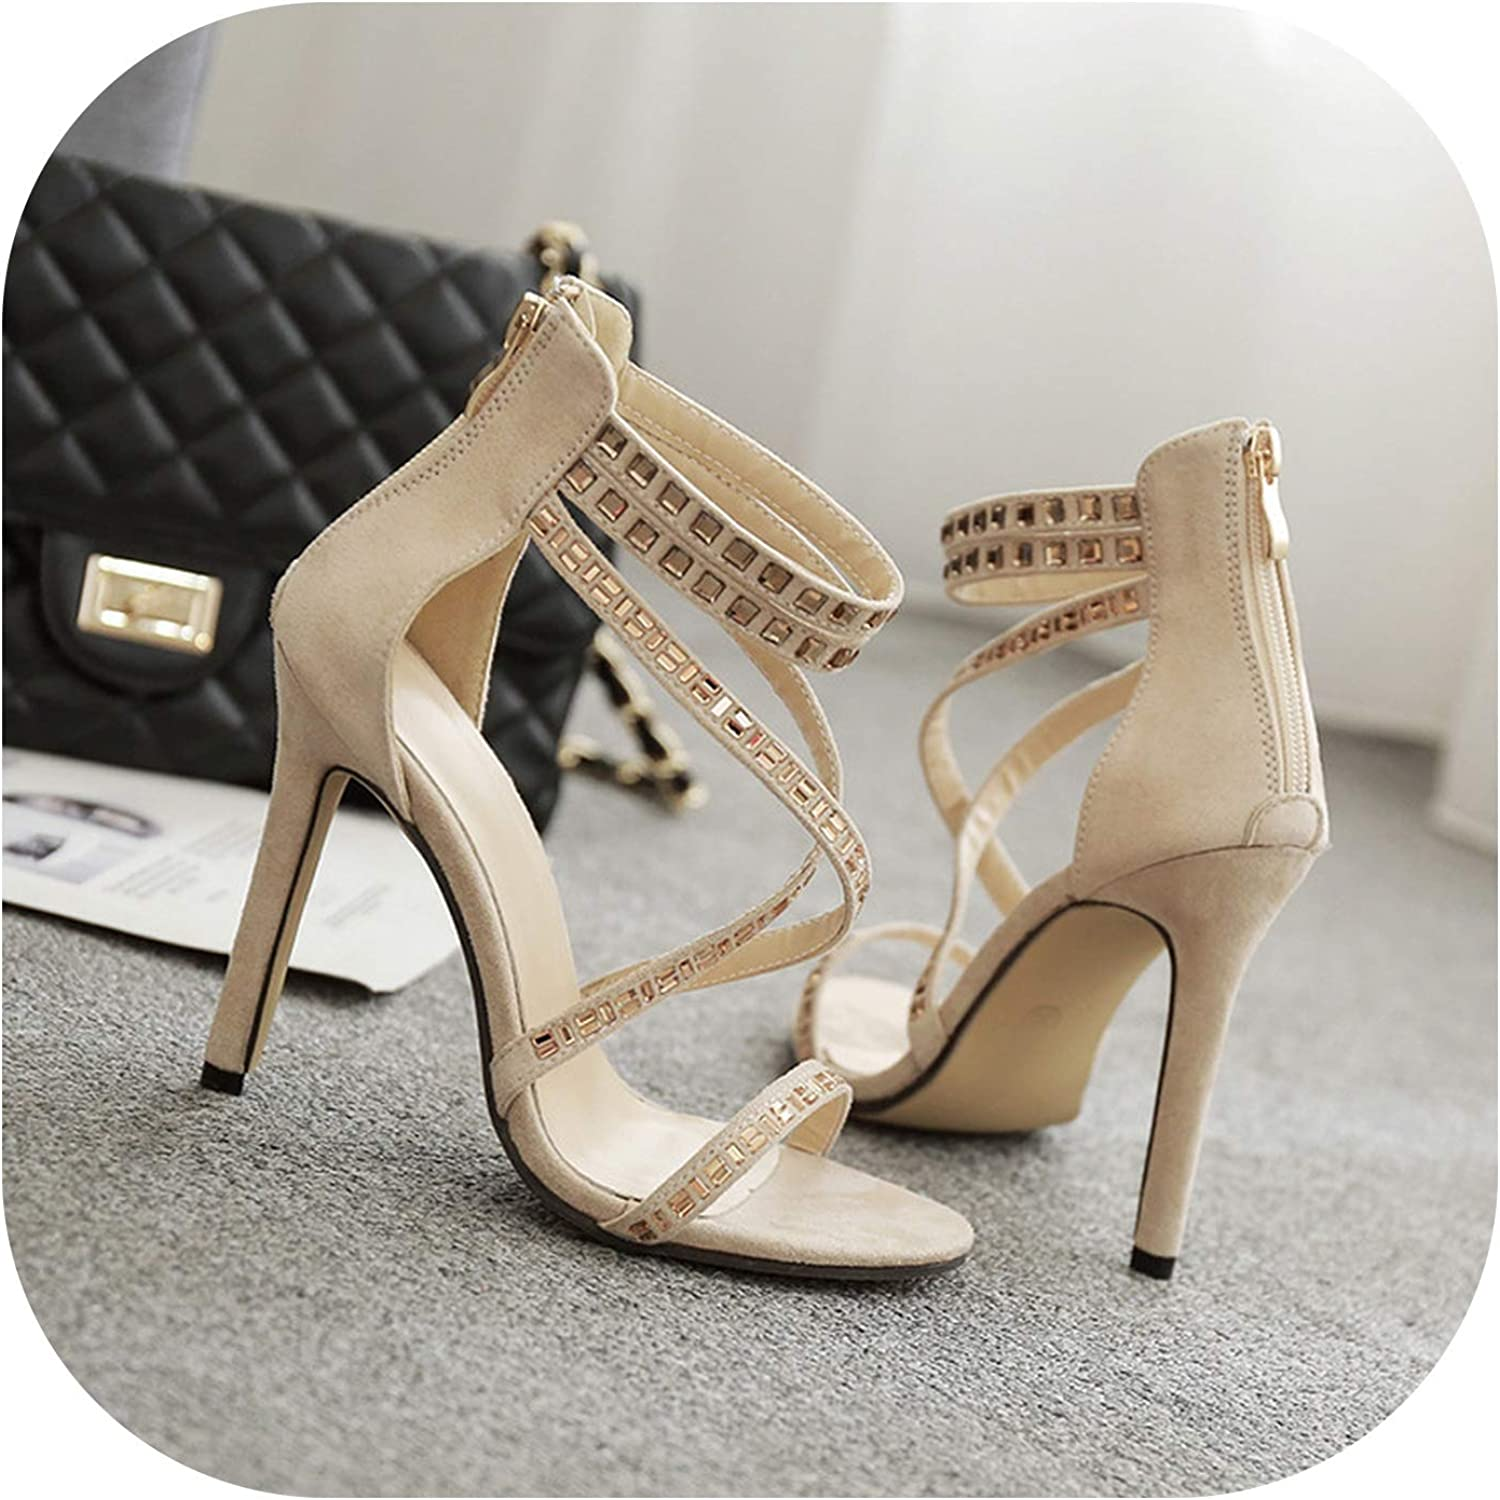 Women's shoes Autumn Super High Heels Sexy Fish Mouth Rhinestone Sandals,